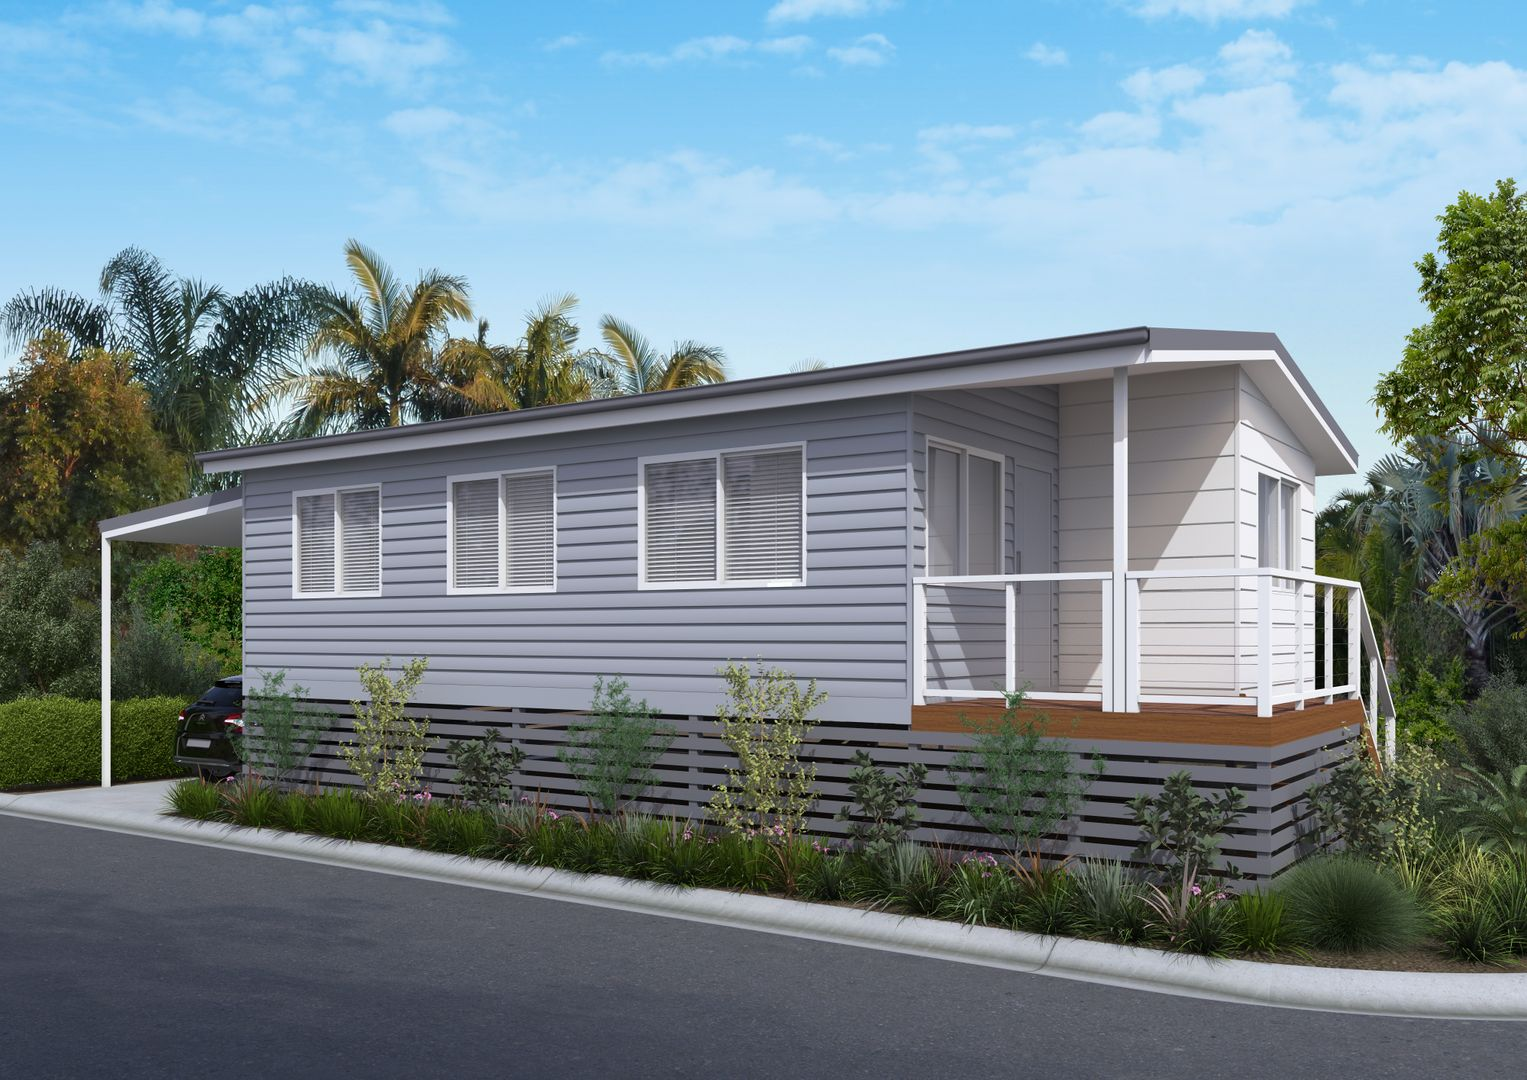 59 & 69/40 Shoalhaven Heads Road, Shoalhaven Heads NSW 2535, Image 0